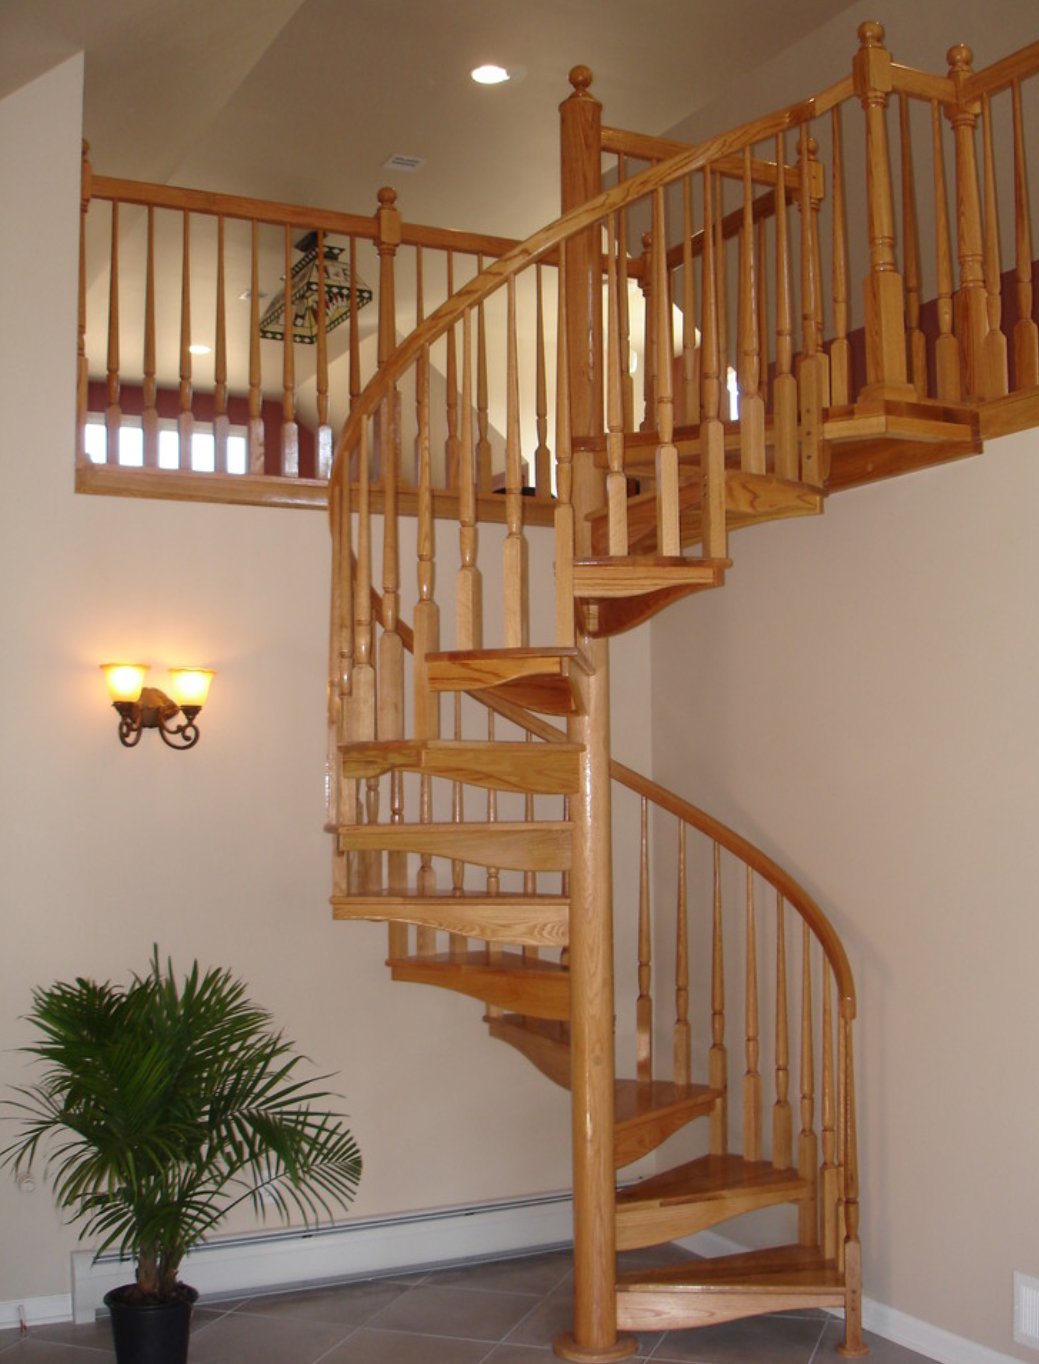 spiral stairs for your home design build planners. Black Bedroom Furniture Sets. Home Design Ideas